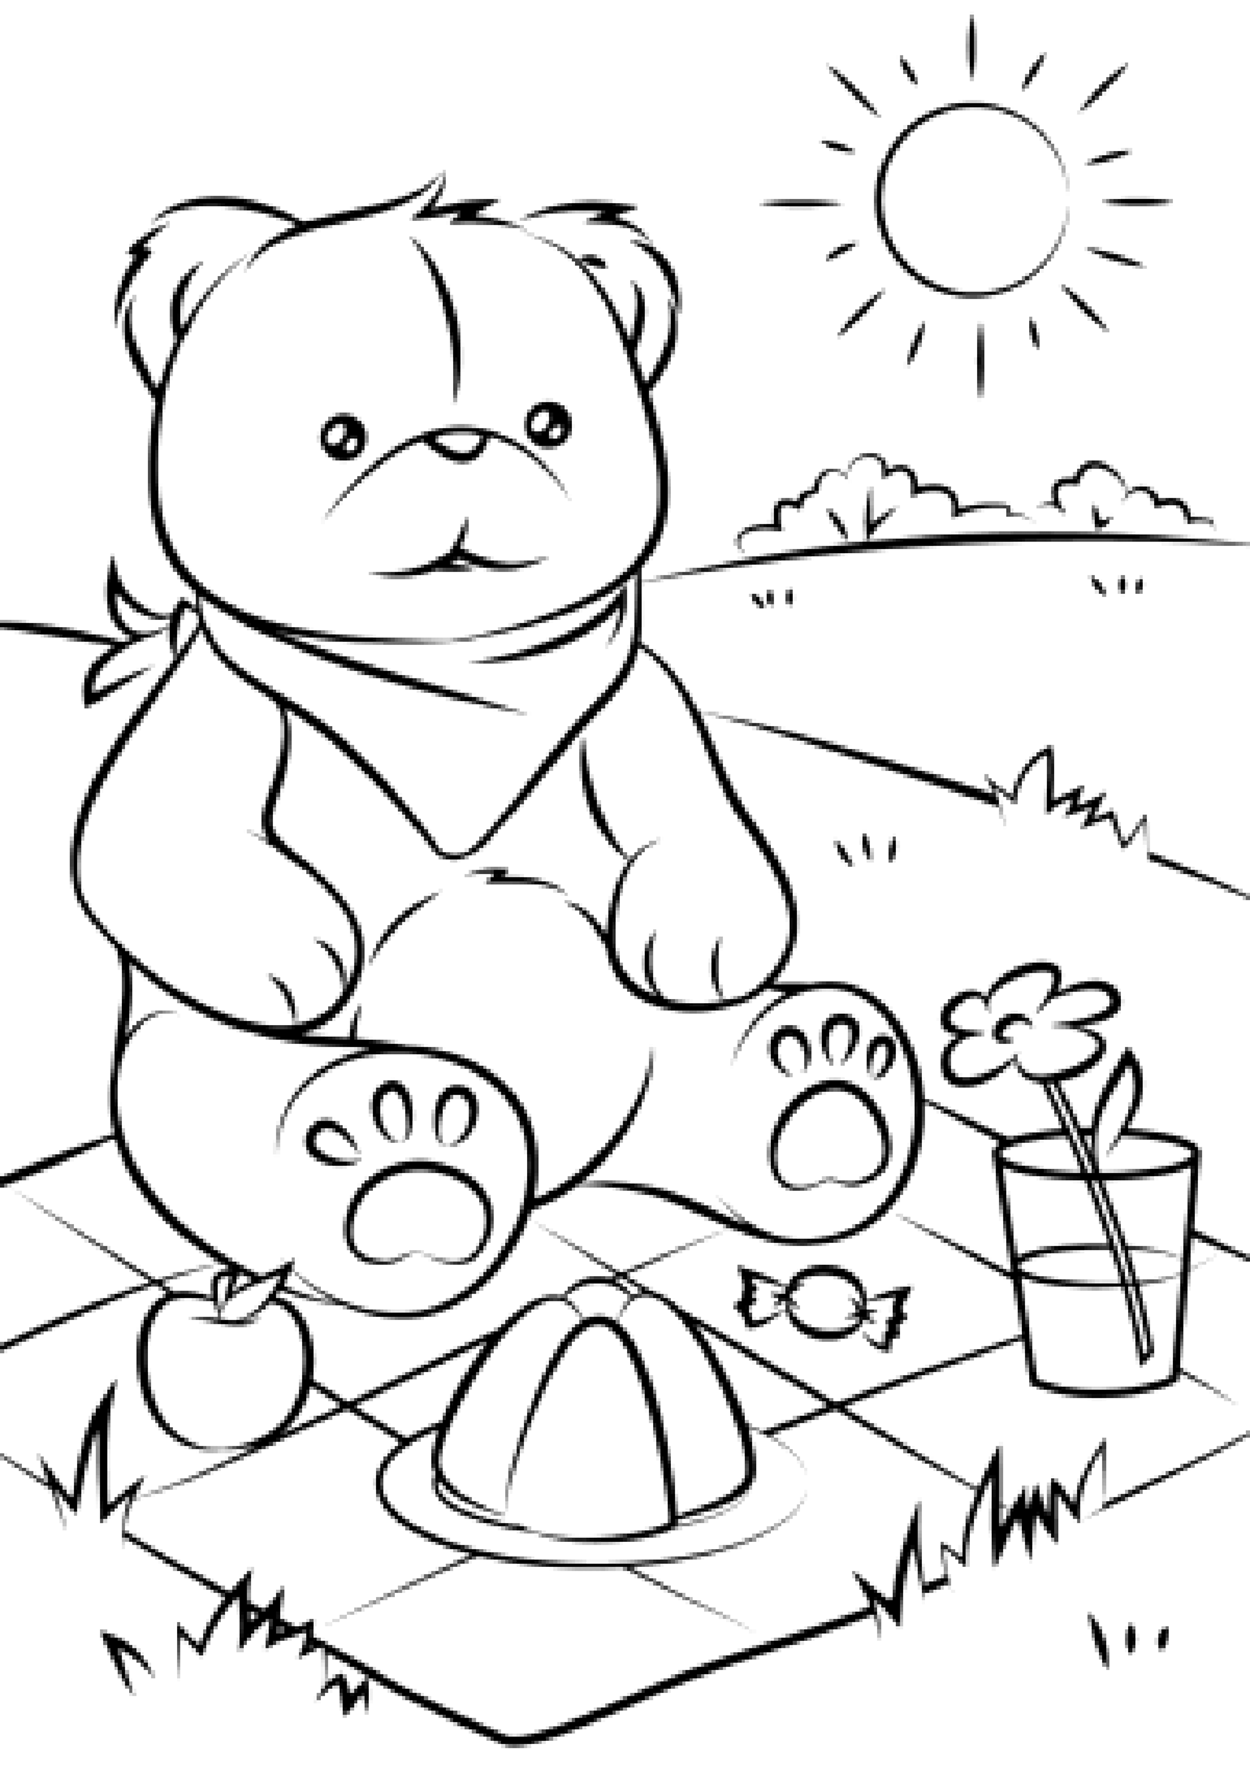 free coloring pages bears care bear coloring pages to download and print for free free coloring bears pages